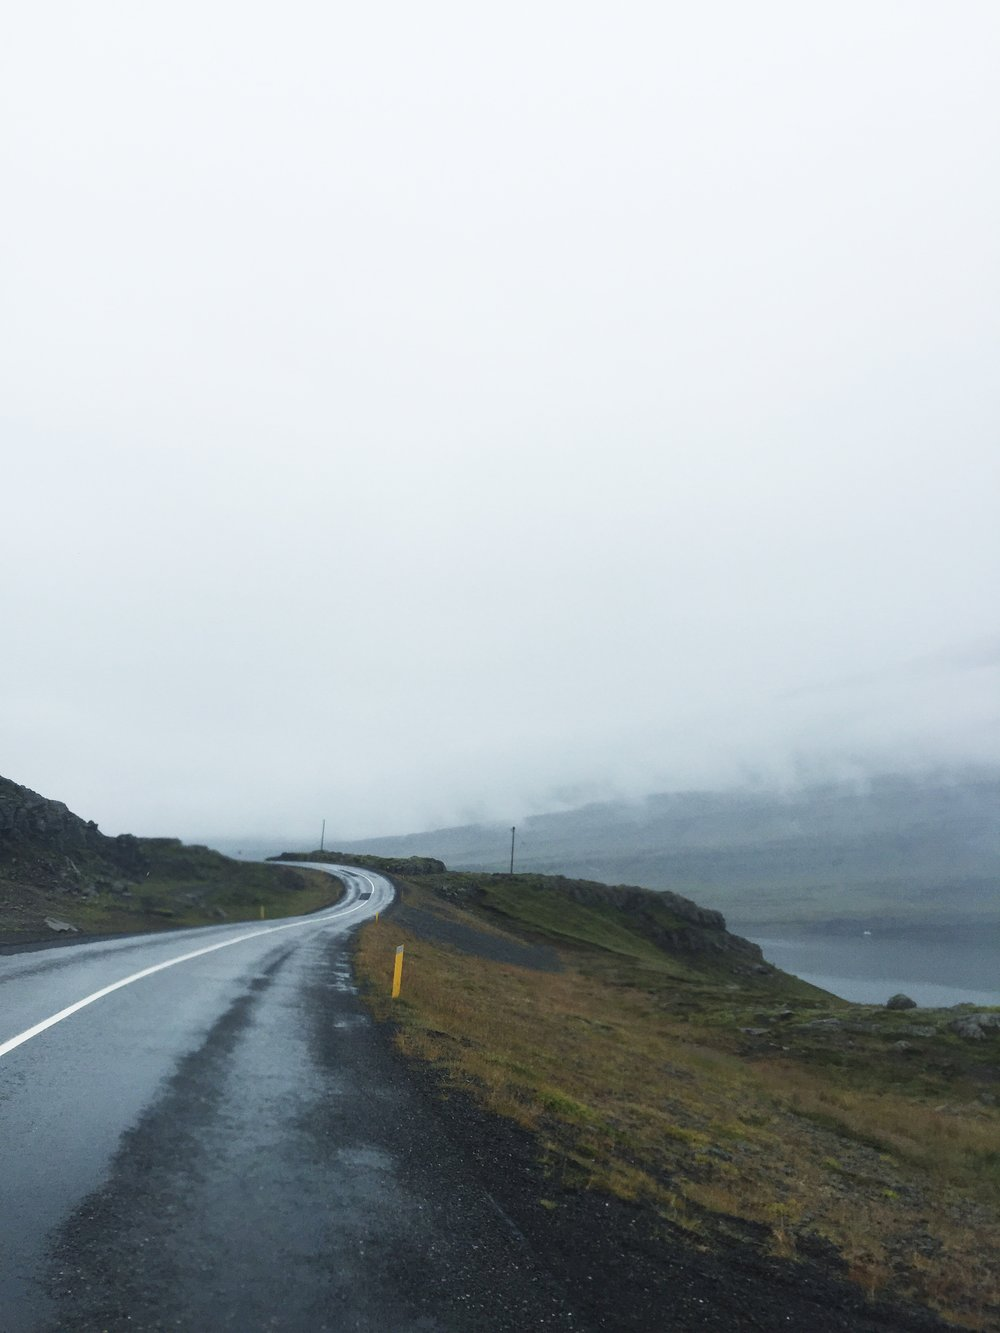 Low visibility on RTE 1, East Iceland